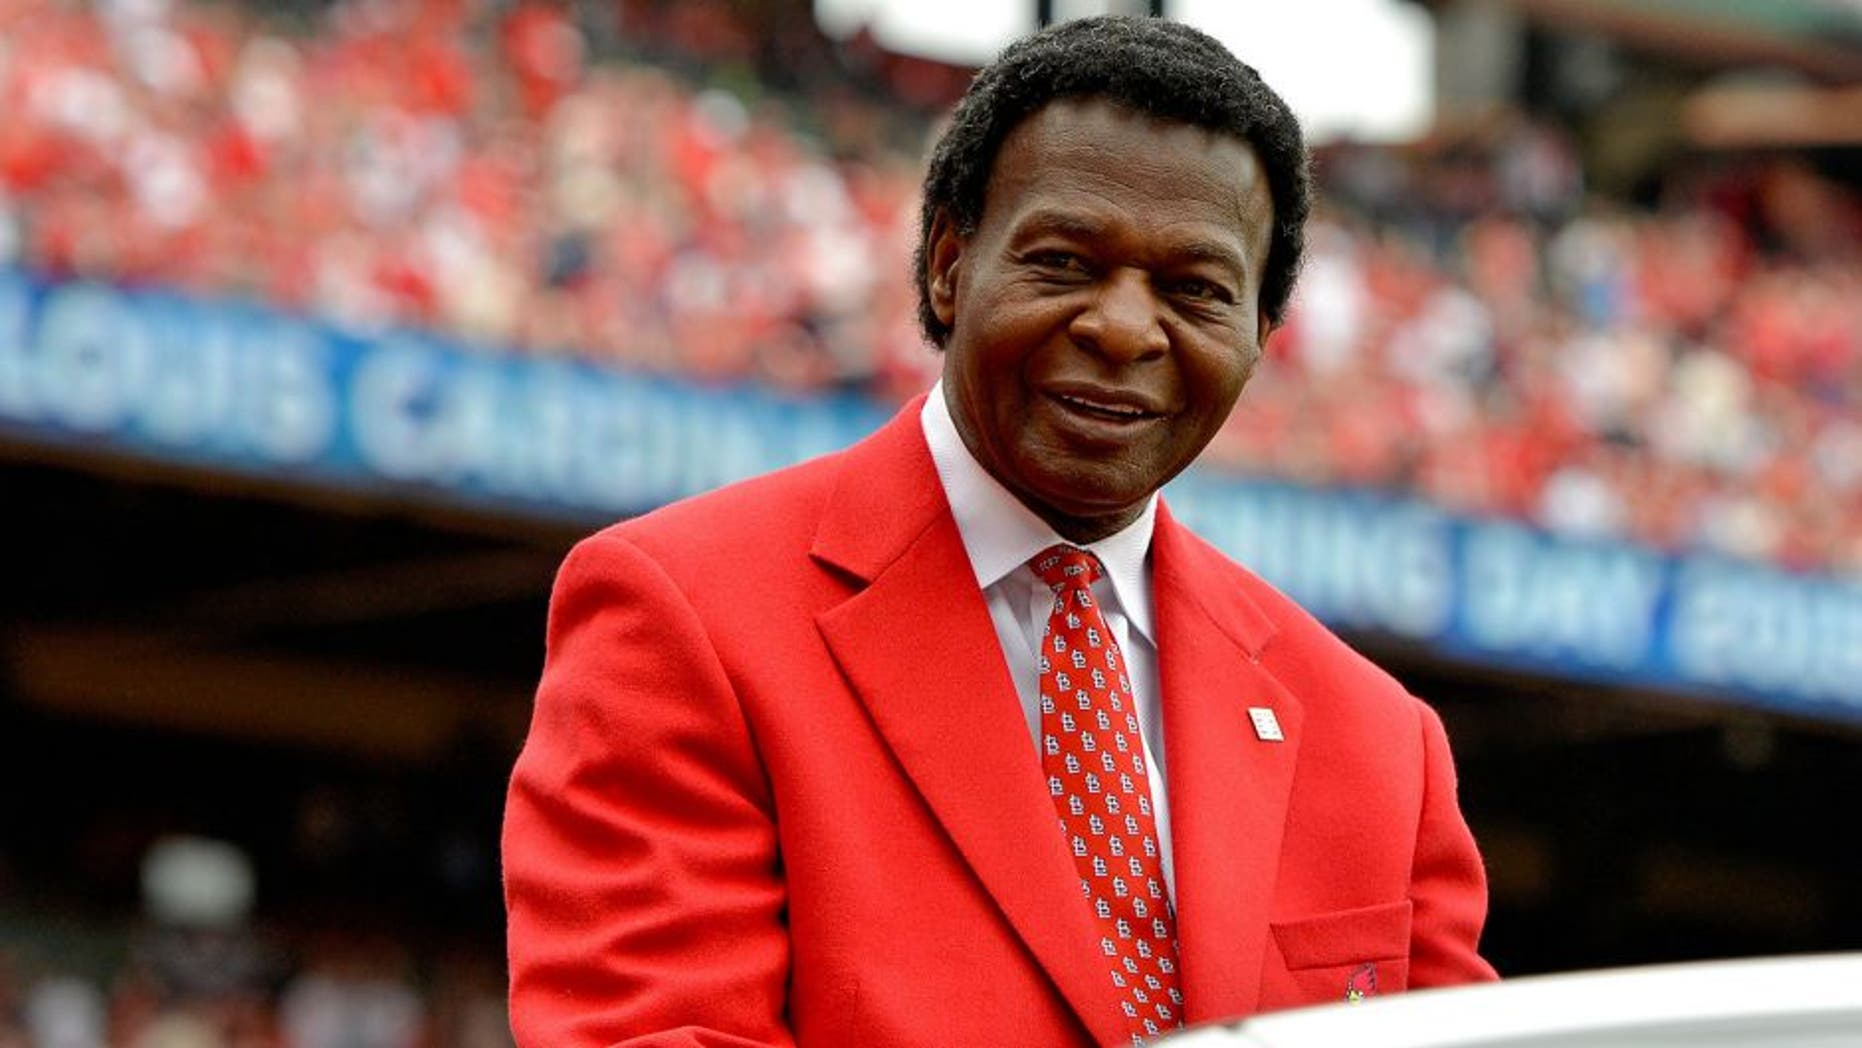 Apr 13, 2015; St. Louis, MO, USA; St. Louis Cardinal former player Lou Brock in attendance for the game between the St. Louis Cardinals and the Milwaukee Brewers at Busch Stadium. Mandatory Credit: Jasen Vinlove-USA TODAY Sports